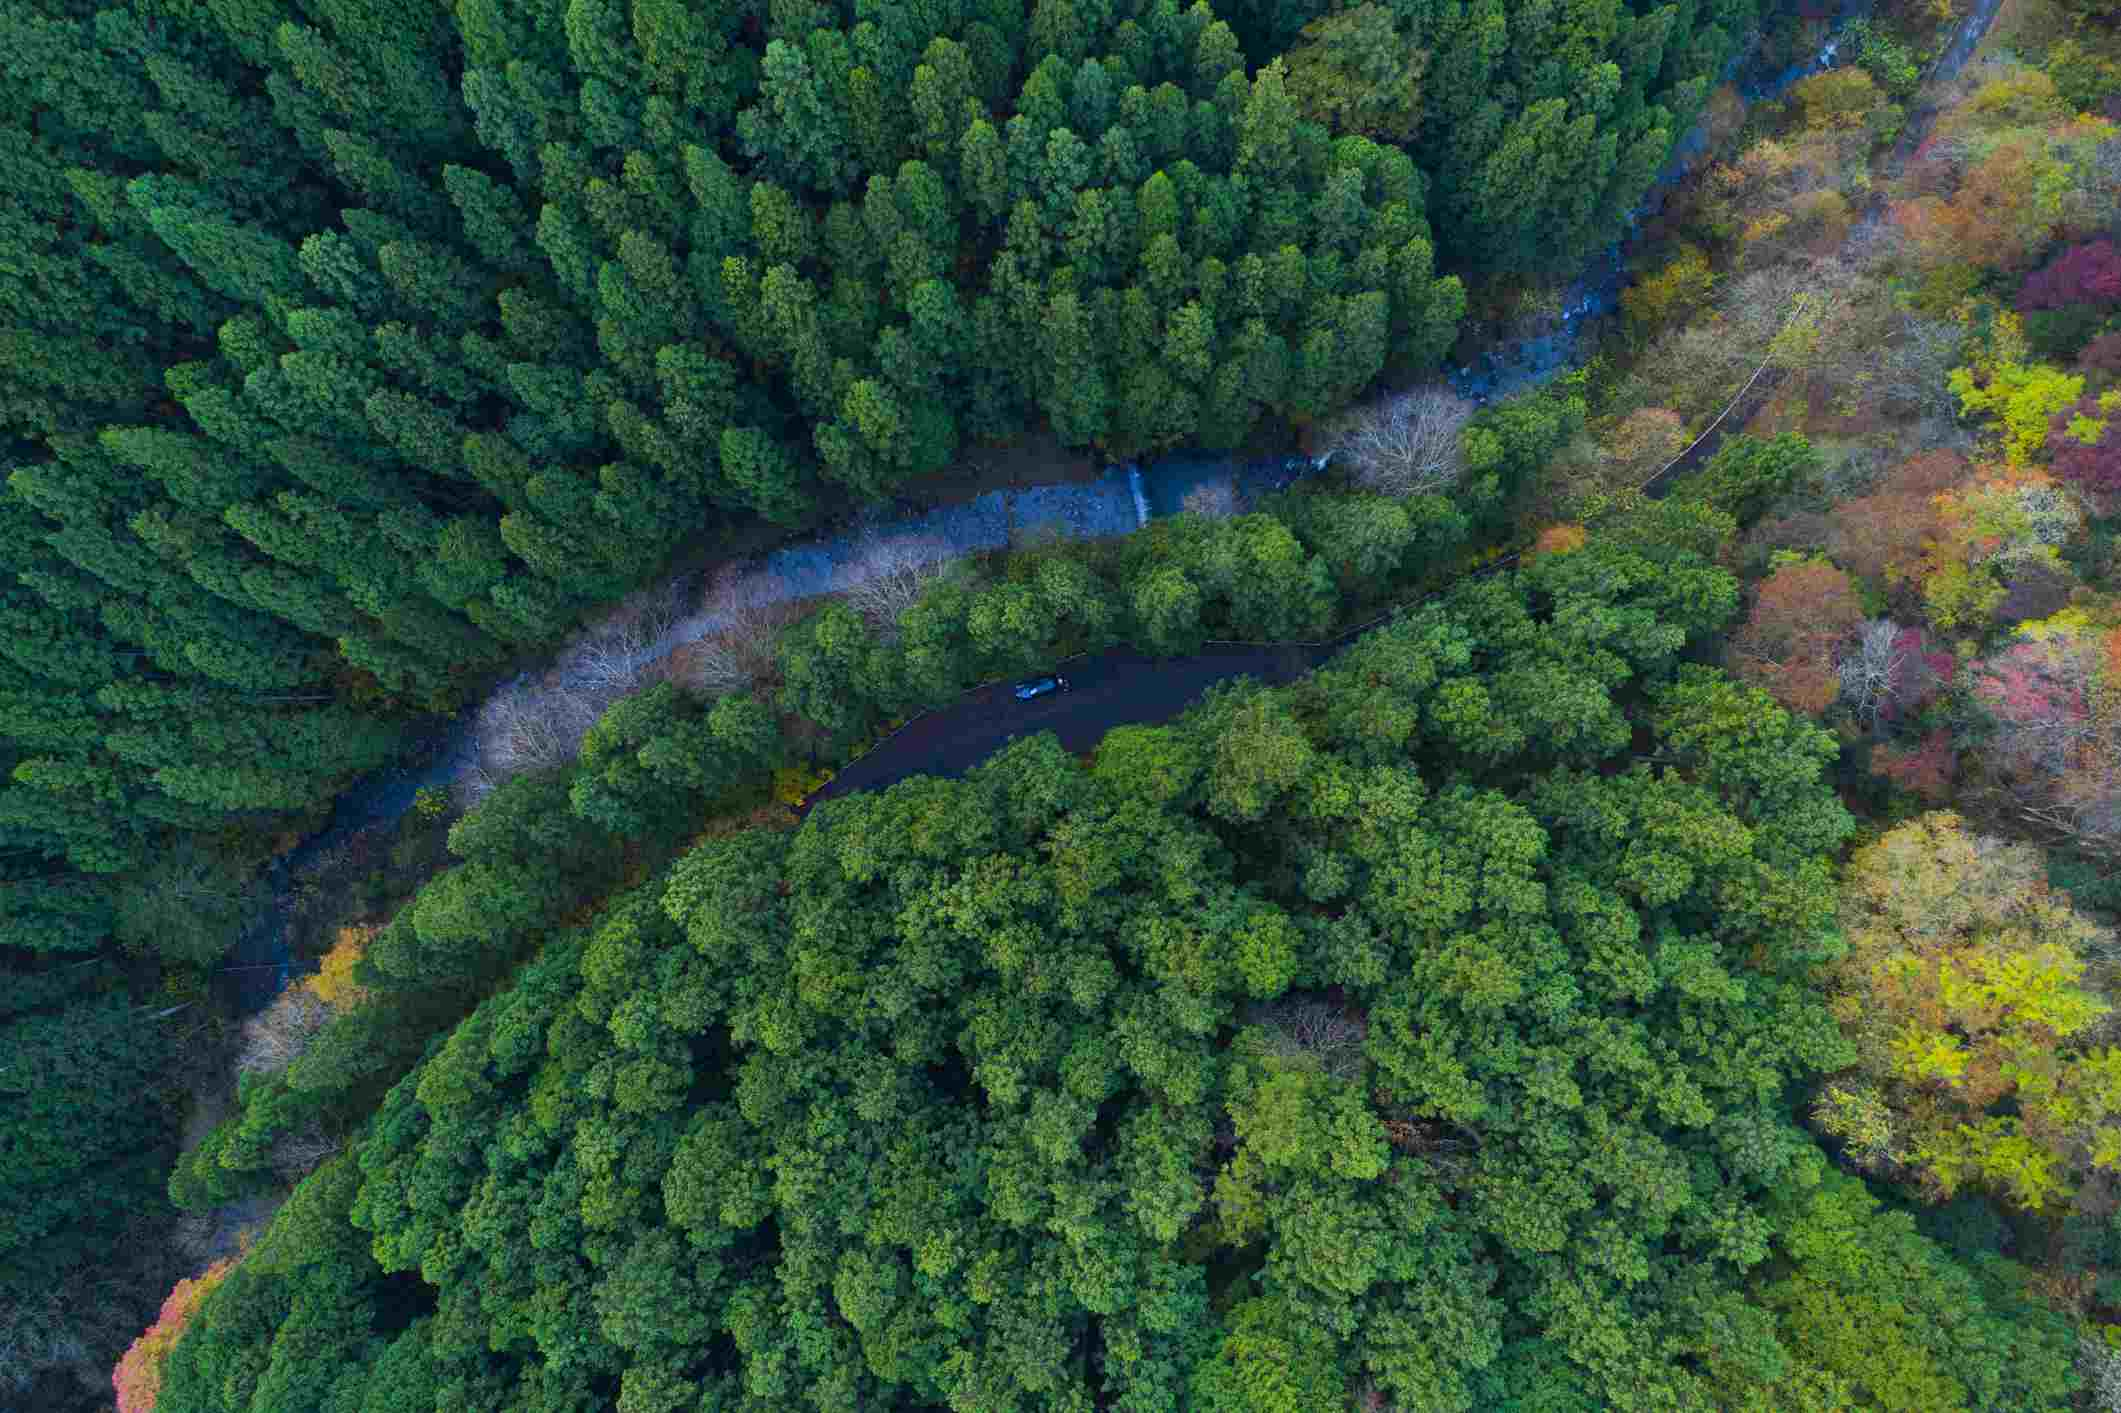 forest from bird's eye view.